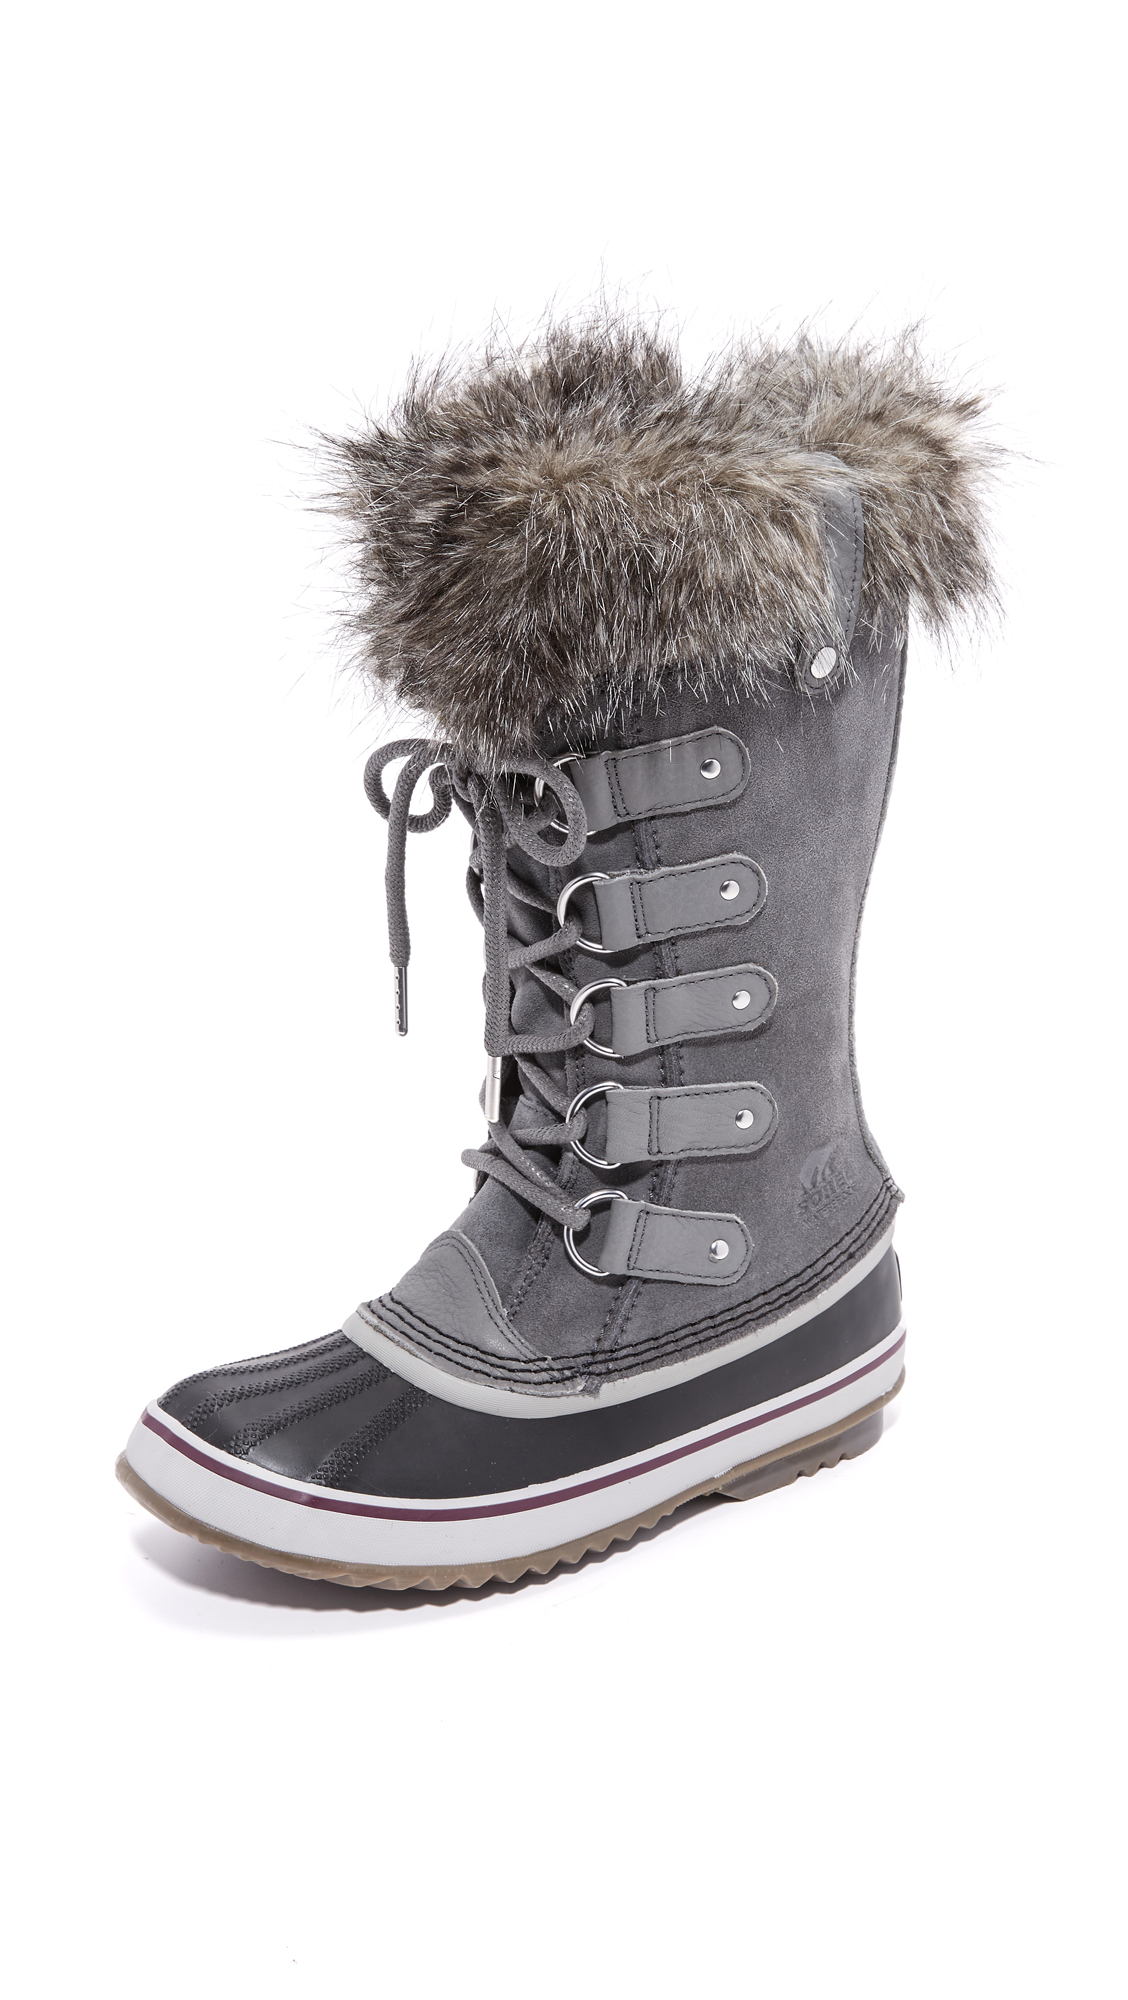 sorel female sorel joan of arctic boots quarry